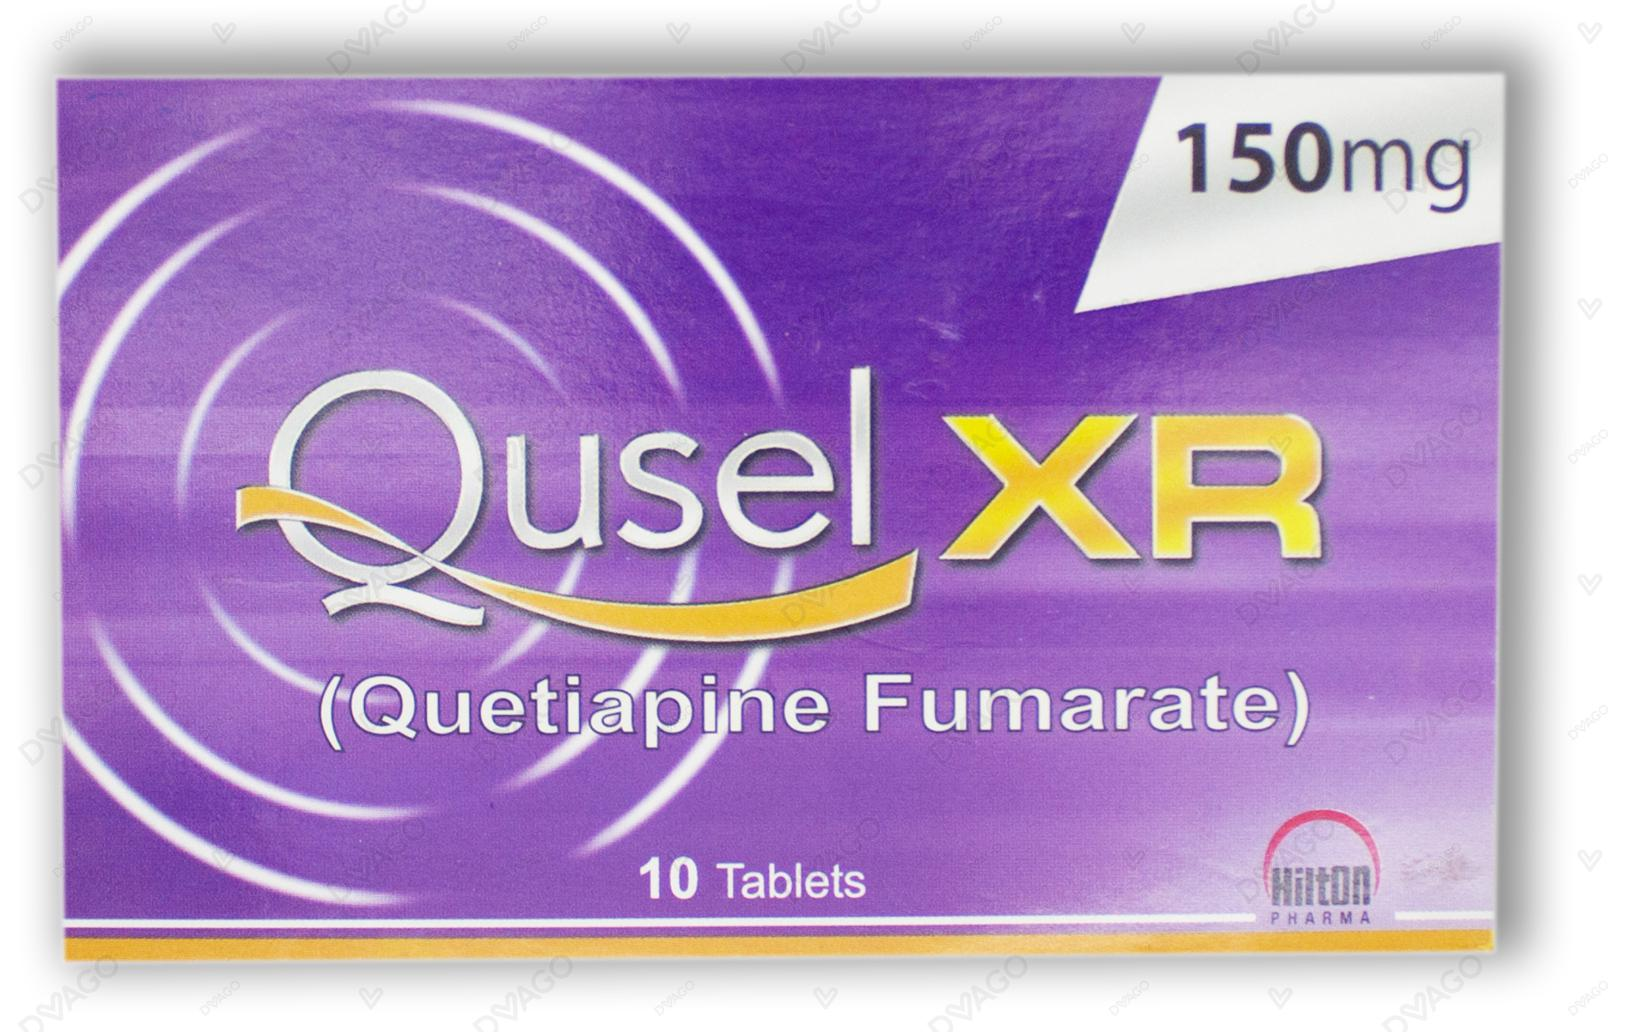 Qusel Tablets Xr 150mg 10's